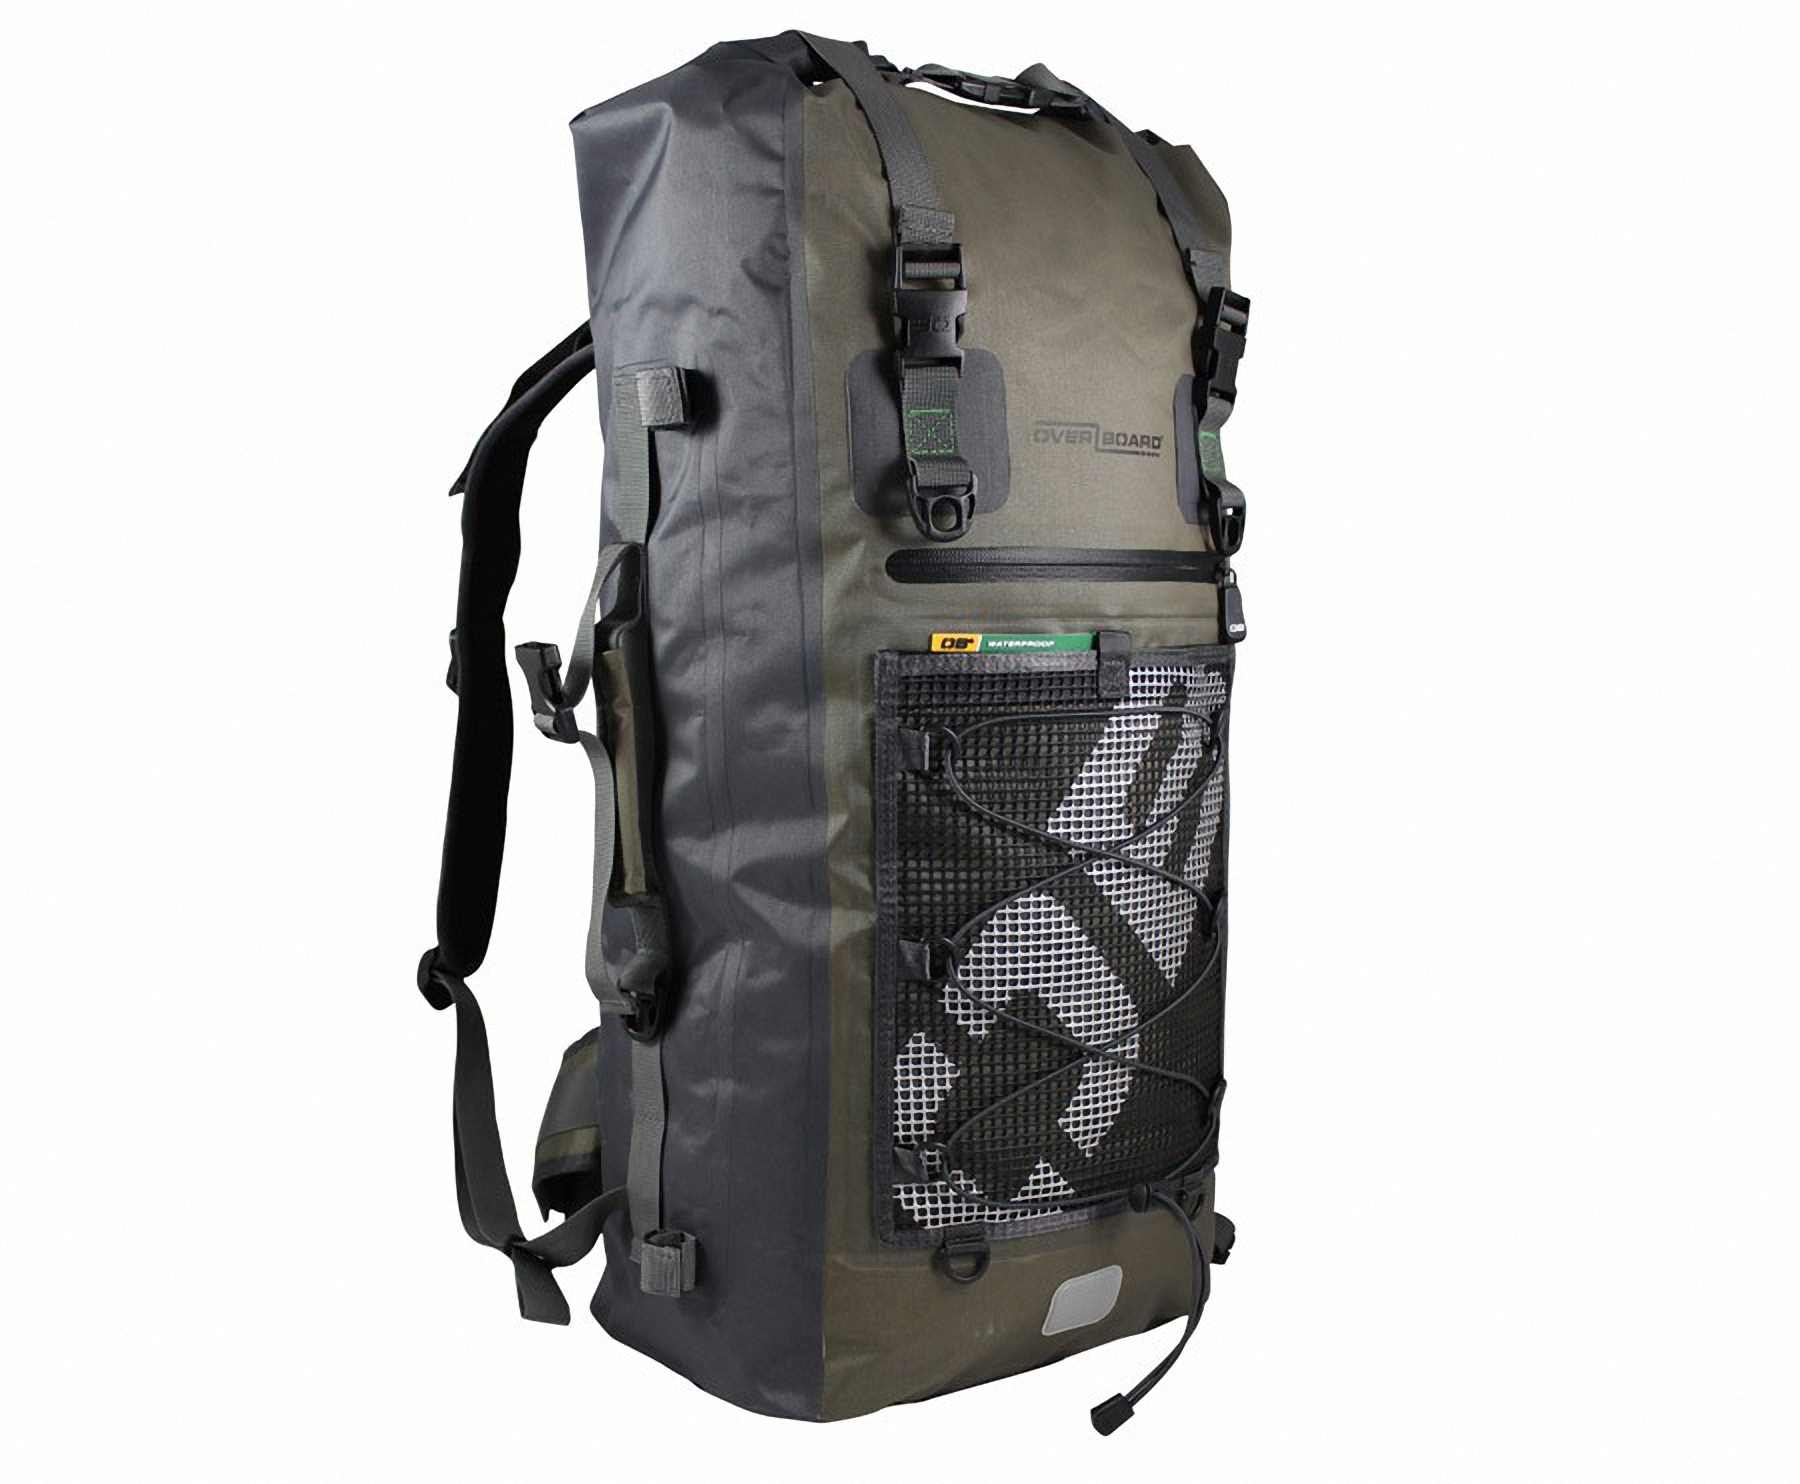 Водонепроницаемый рюкзак OverBoard OB1119G - Ultra-light Waterproof Backpack - 50L. Фото 5